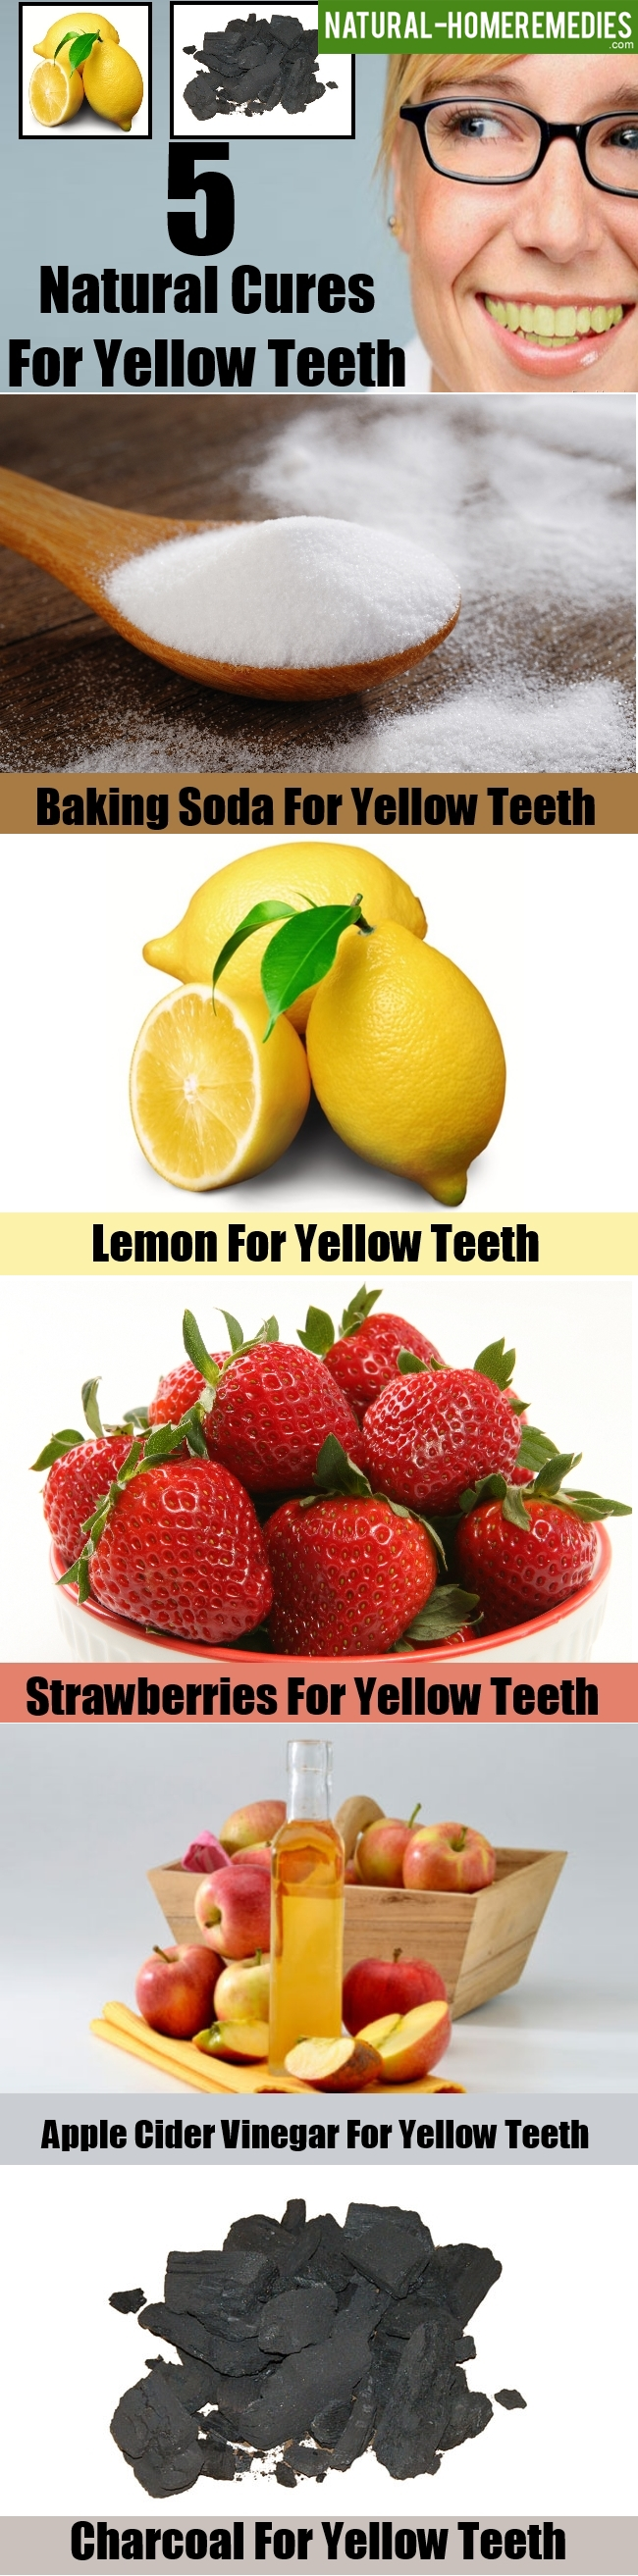 5 Natural Cures For Yellow Teeth